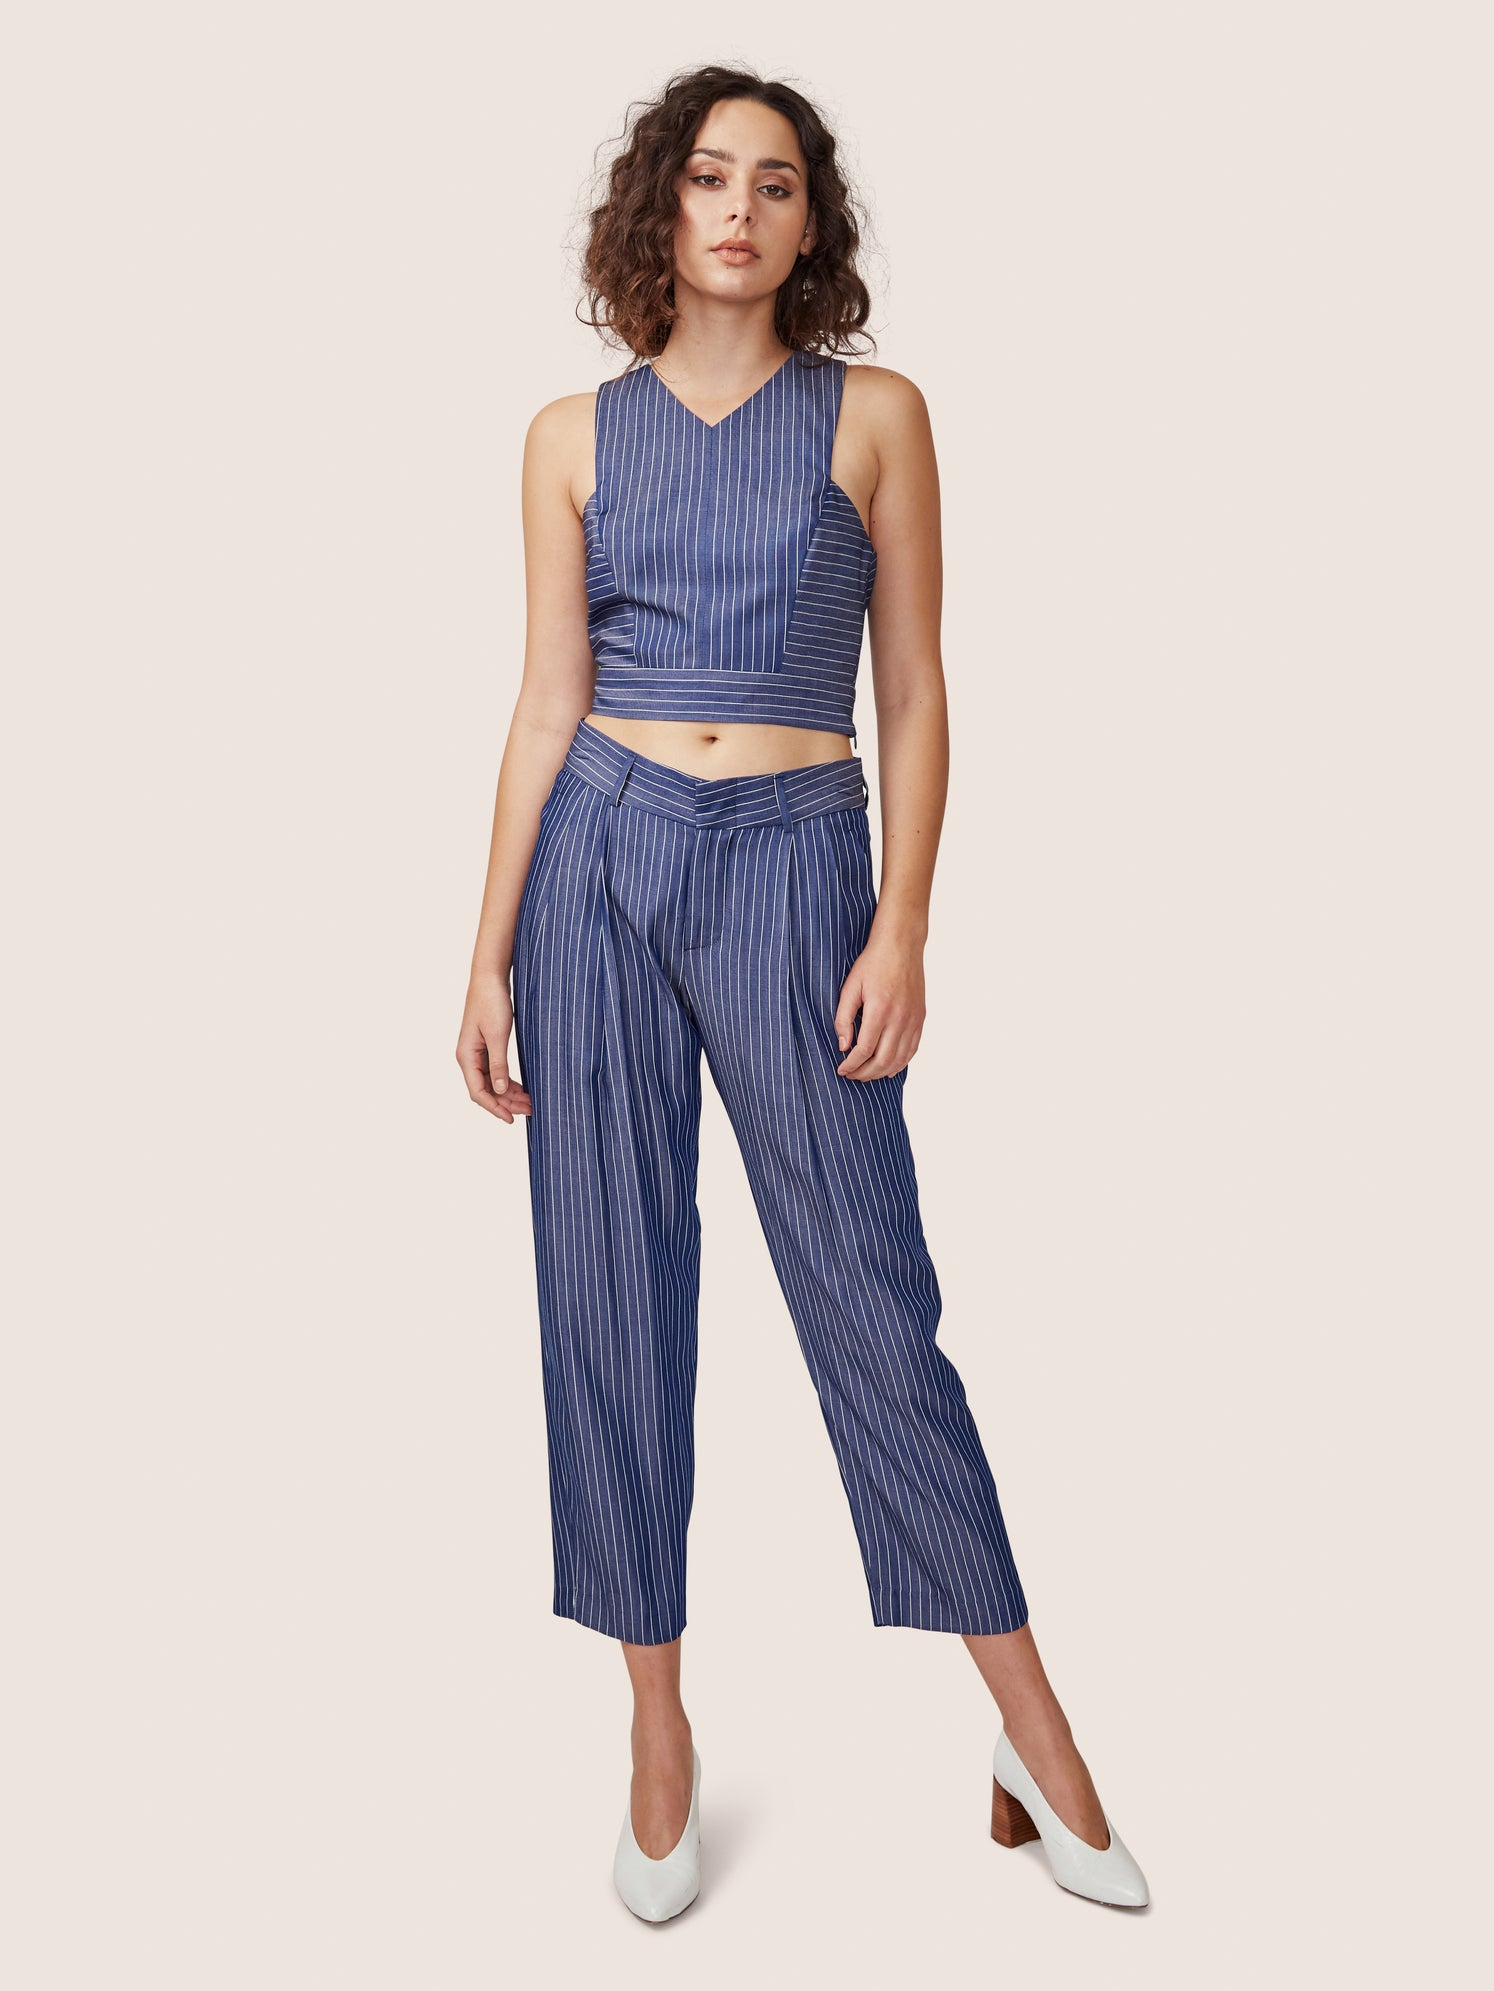 Pin stripe cross back crop top with matching relaxed cropped pleated pant Alternate